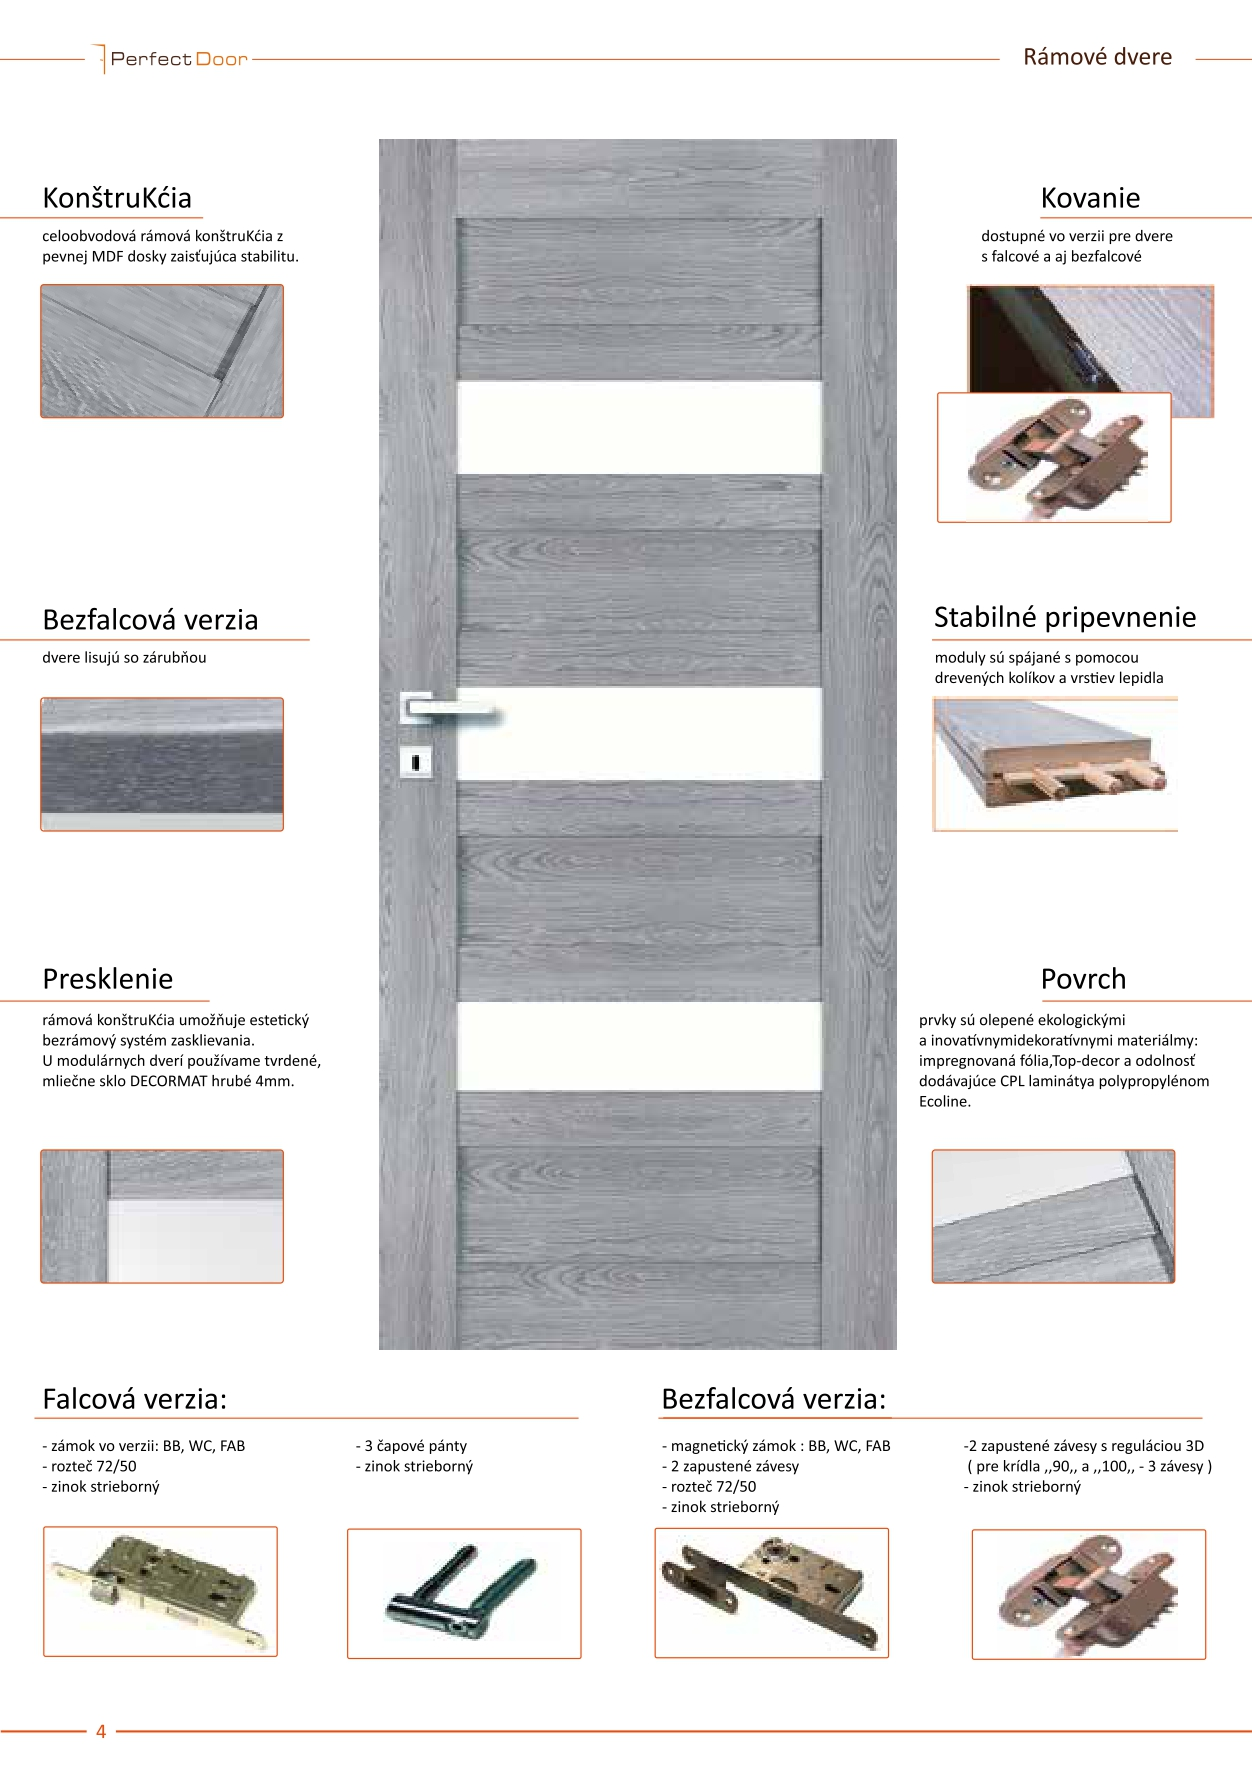 Perfectdoor katalog  1 2019 pages-to-jpg-0004